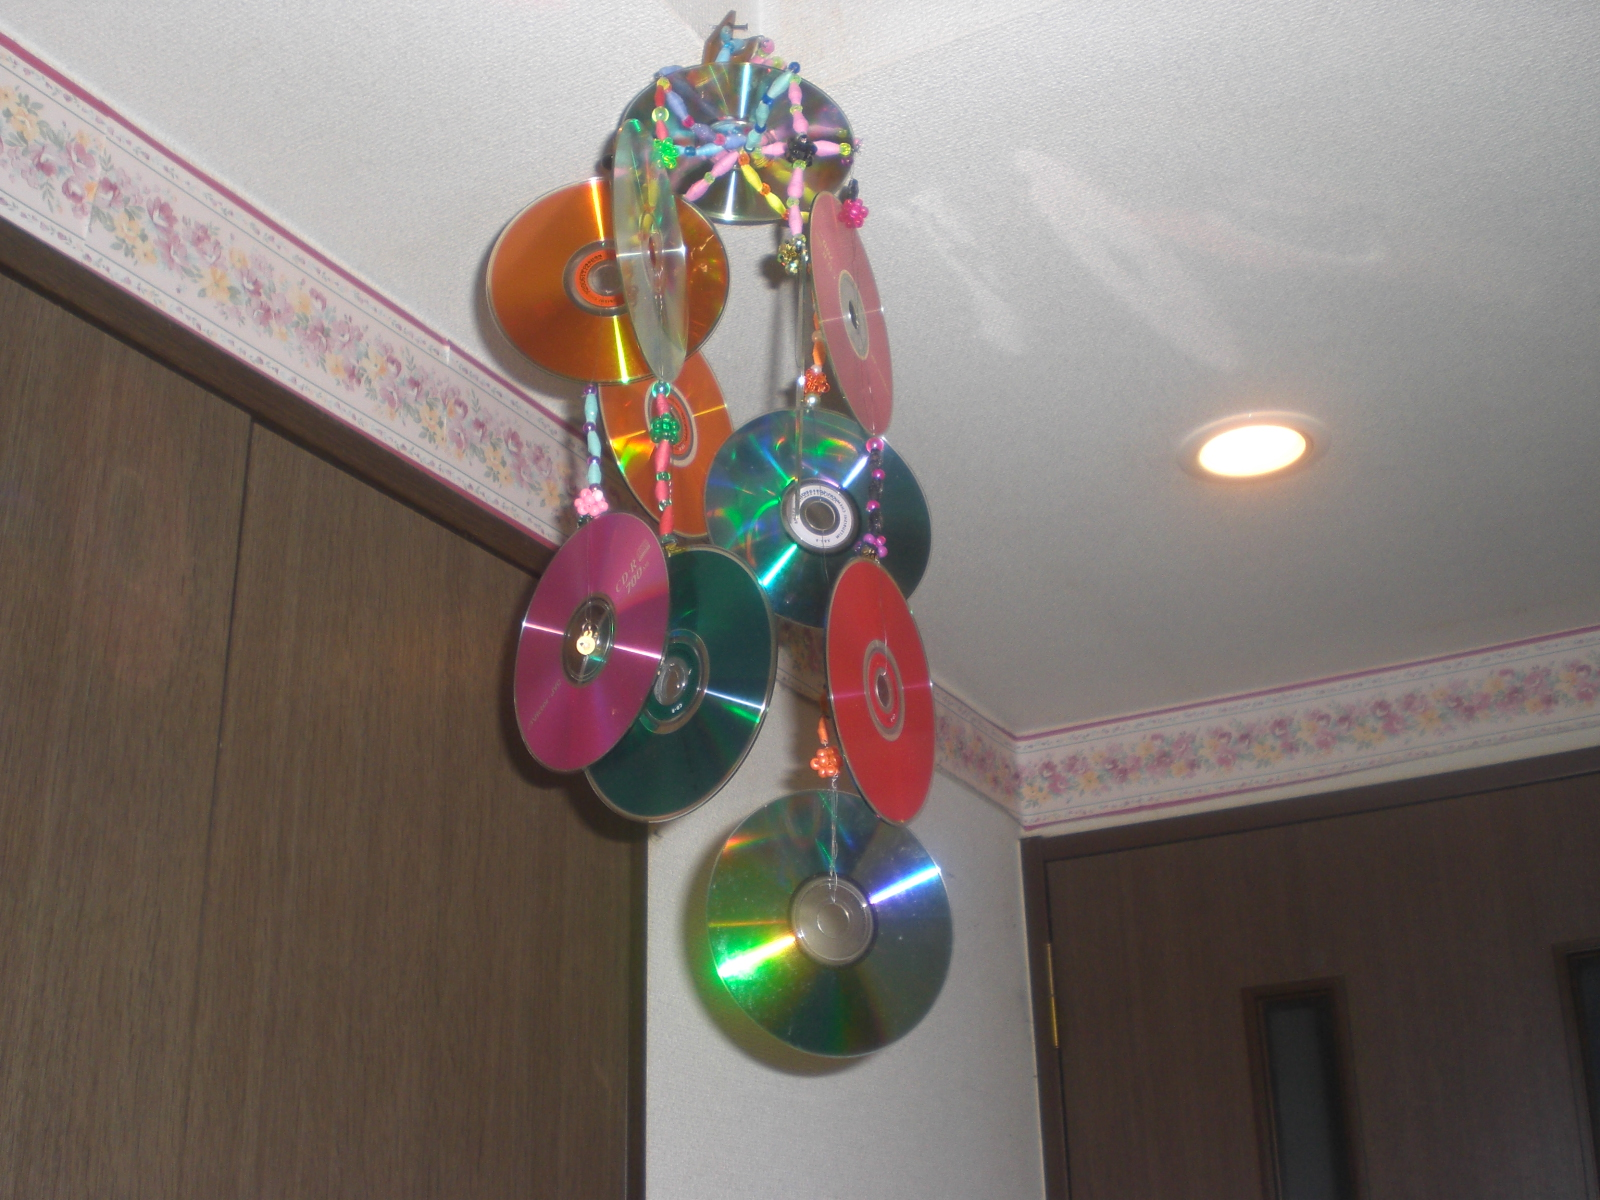 Decorative Ceiling Discs Ysahs Creative Hobby 12 Cds For Hanging Decoration